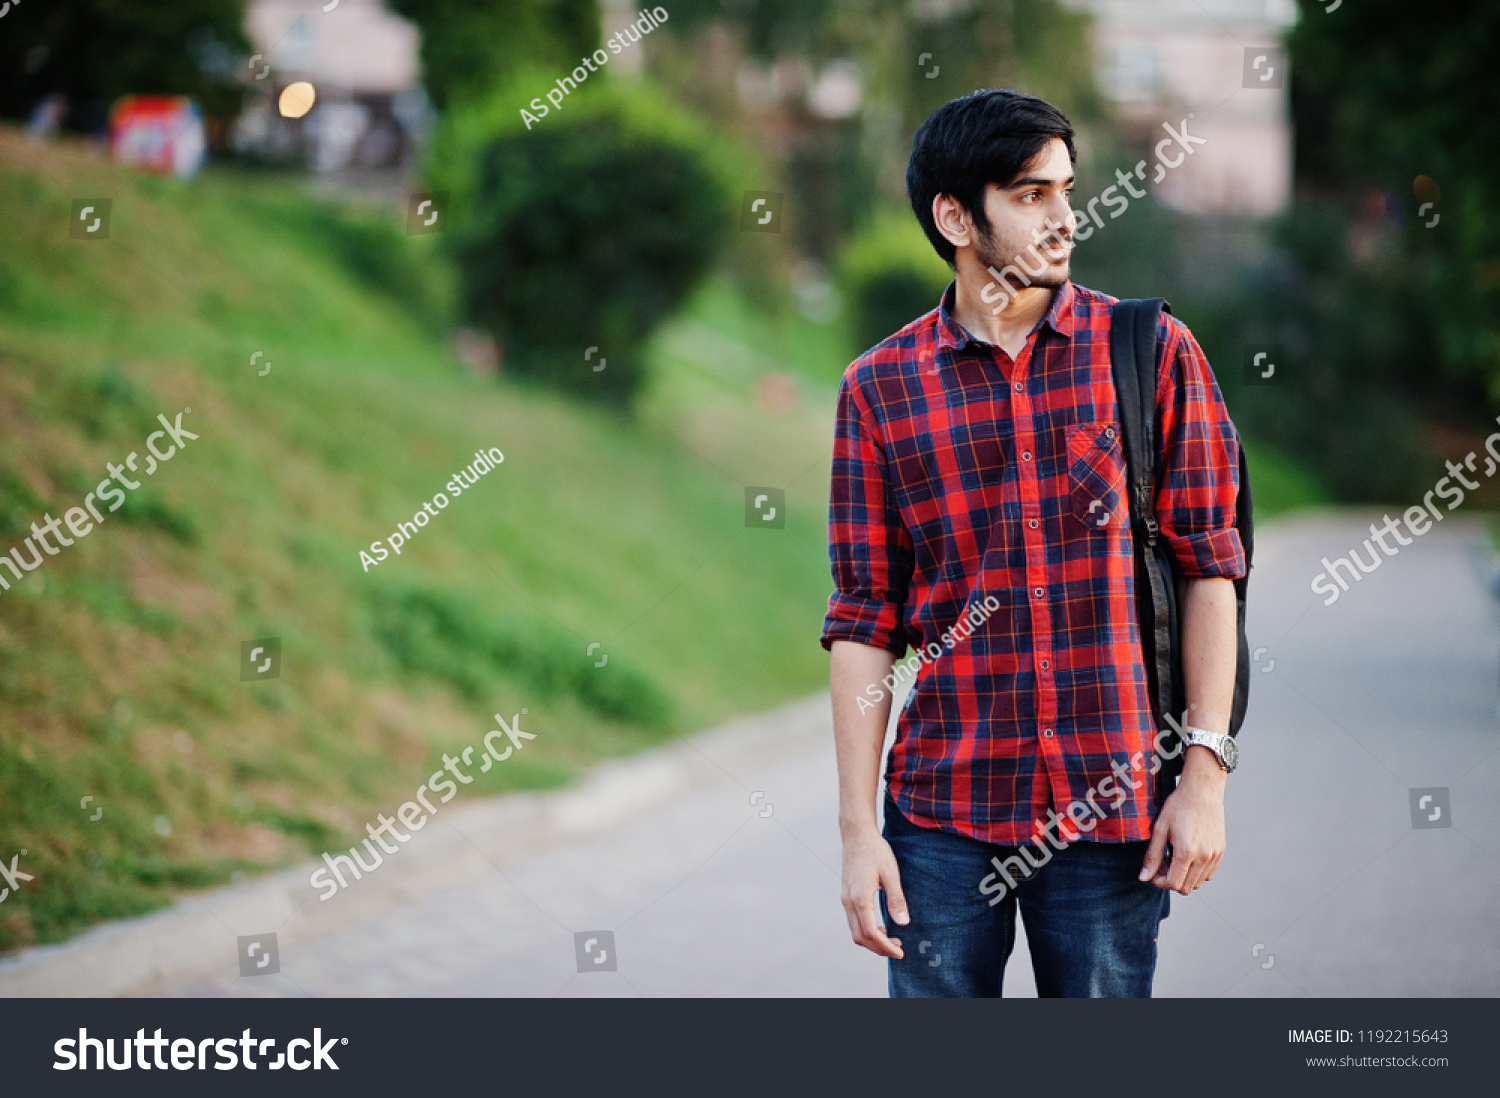 ea70a74a89 Young indian student man at red checkered shirt and jeans with backpack  posed at street.